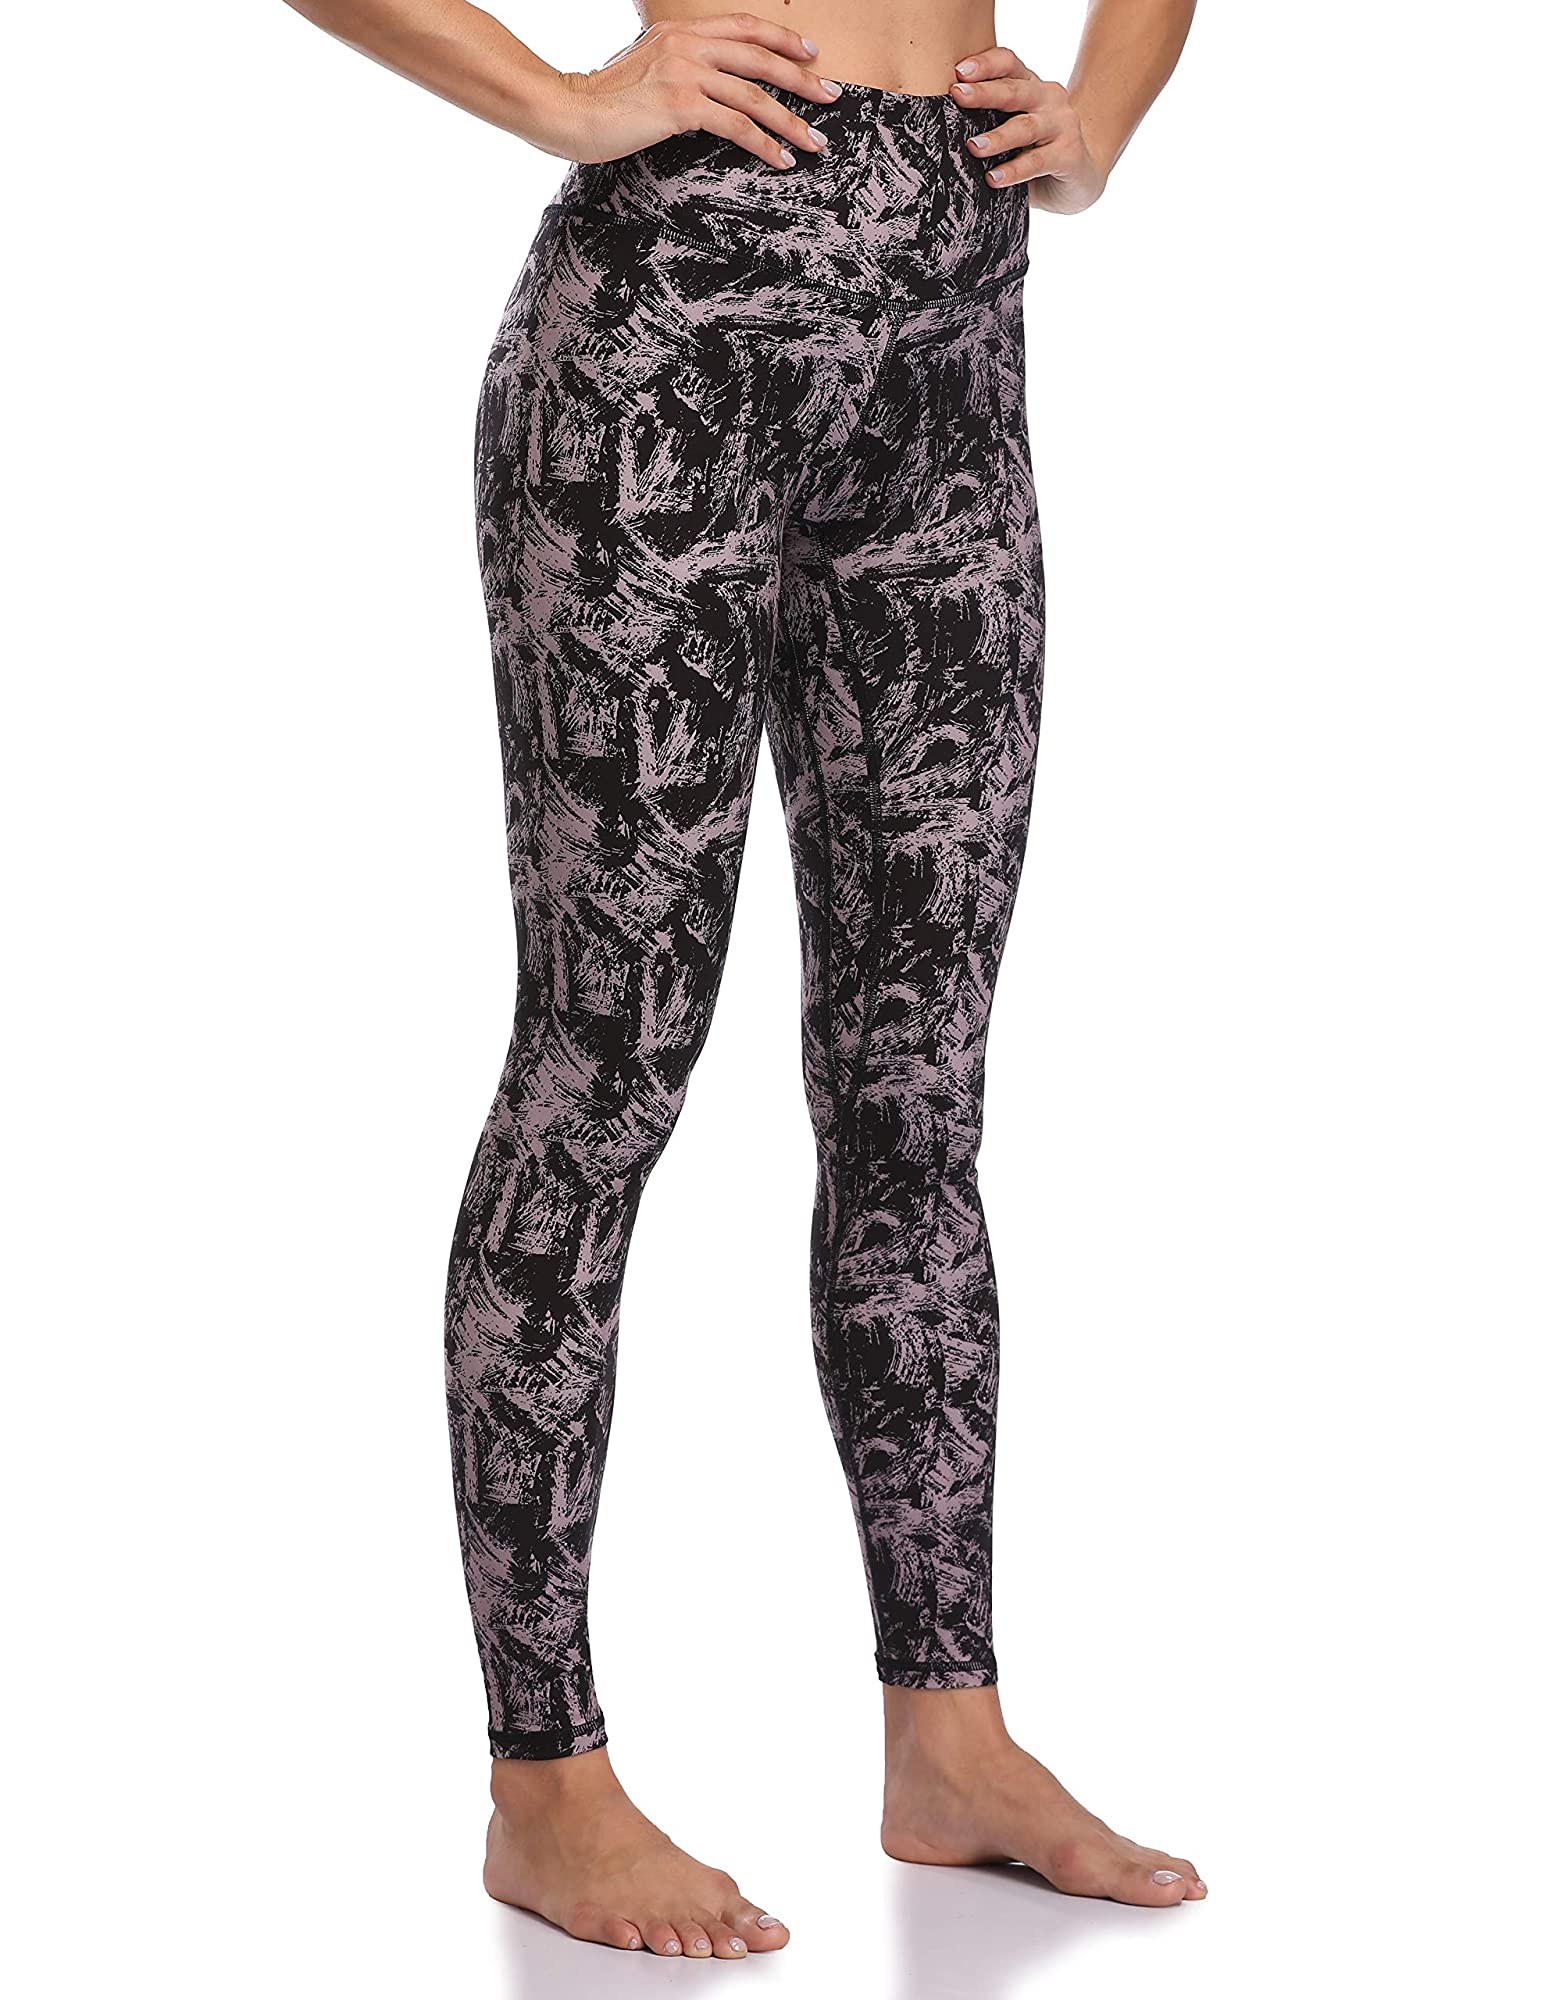 Women'S High Waisted Pattern Leggings Full-Length Yoga Pants